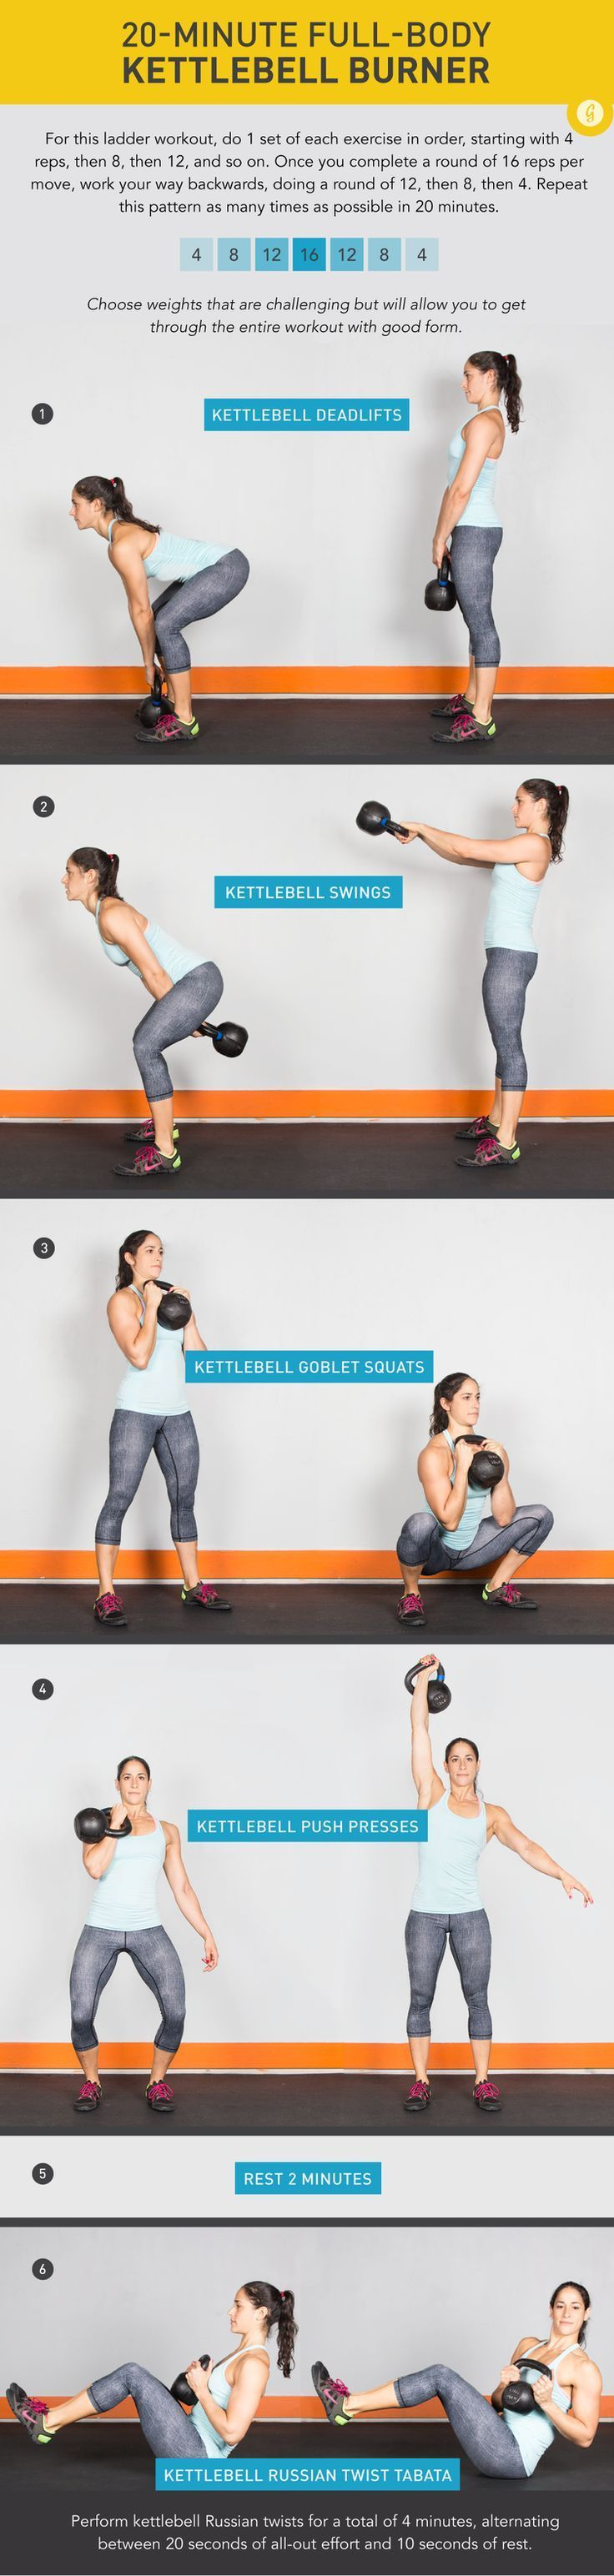 This workout may be quick, but don't let that fool you. It spikes your heart rate while bringing the burn! http://greatist.com/move/quick-kettlebell-workout